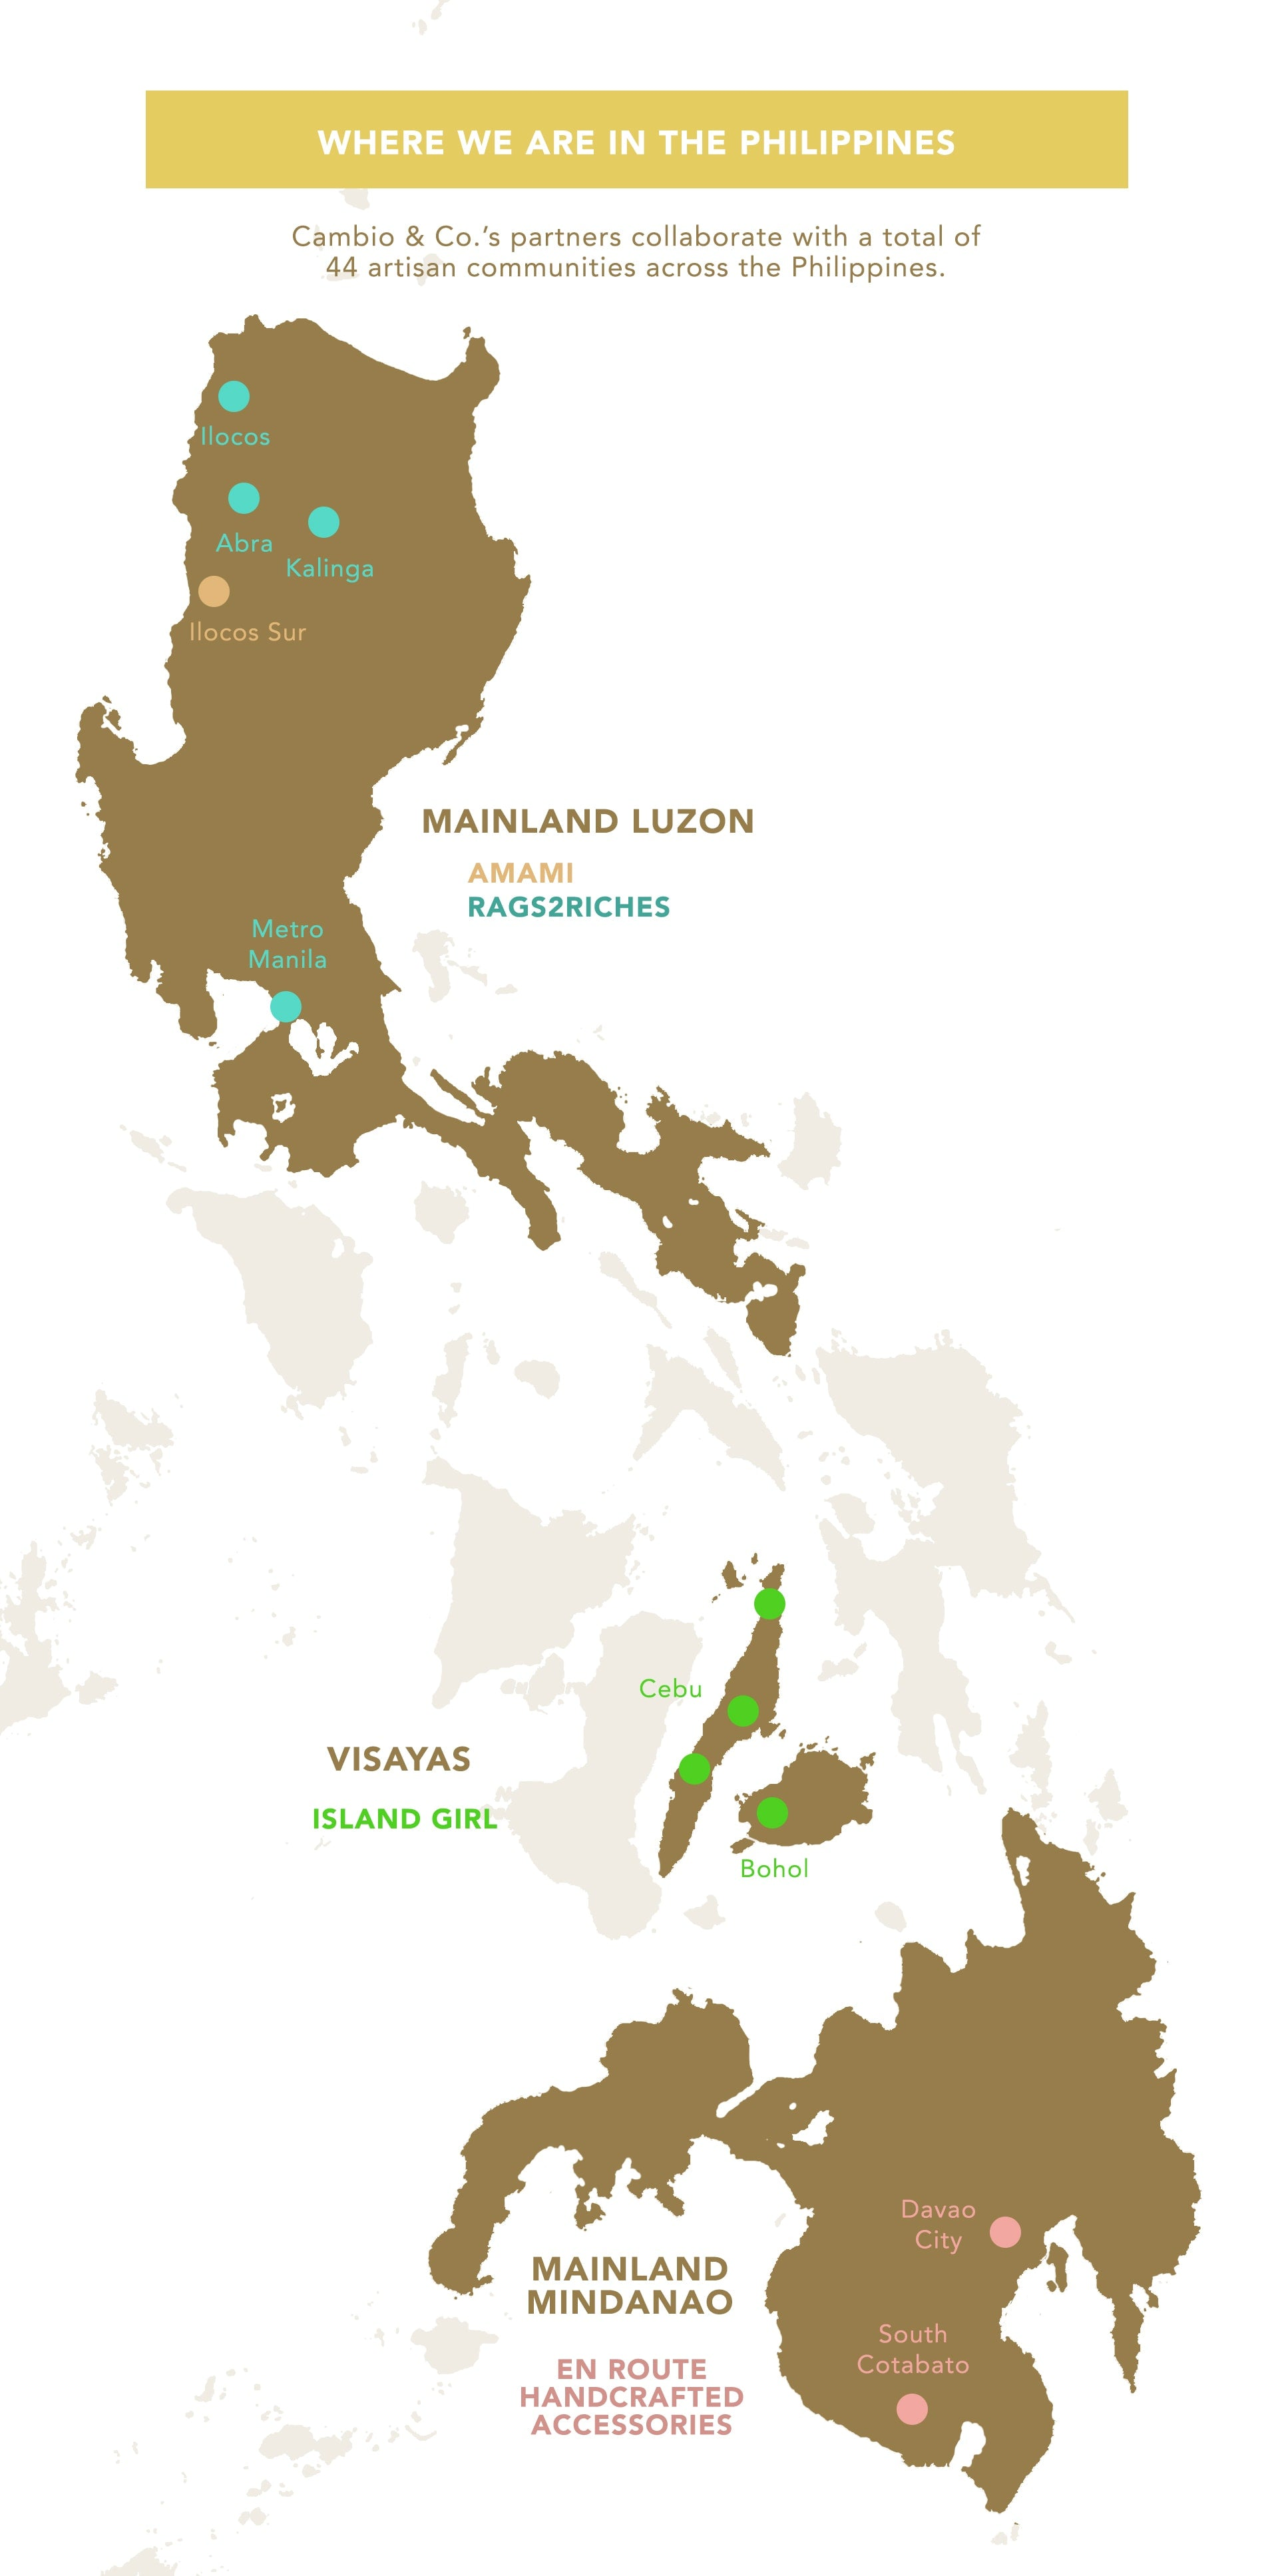 Social impact map of Cambio & Co. artisan communities across the Philippines in Luzon, Visayas, and Mindanao.